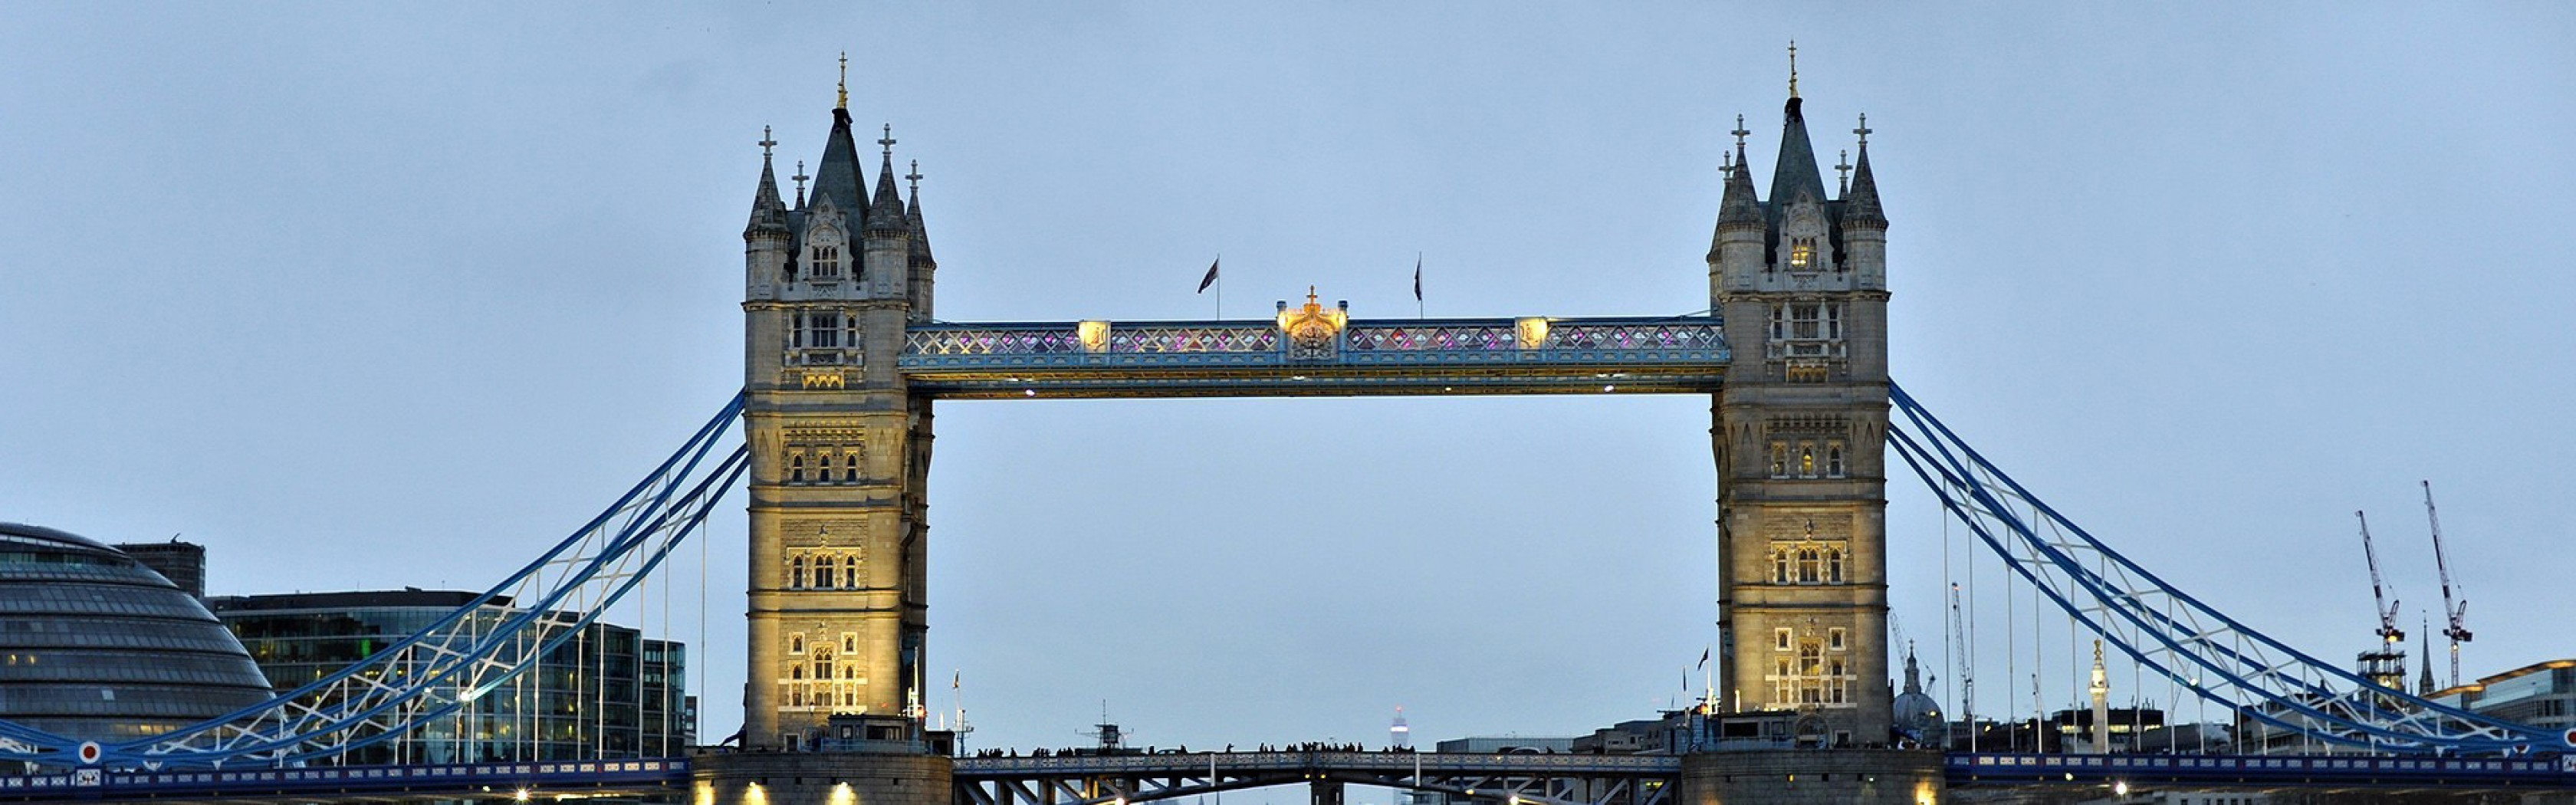 London bridge 3360x1050